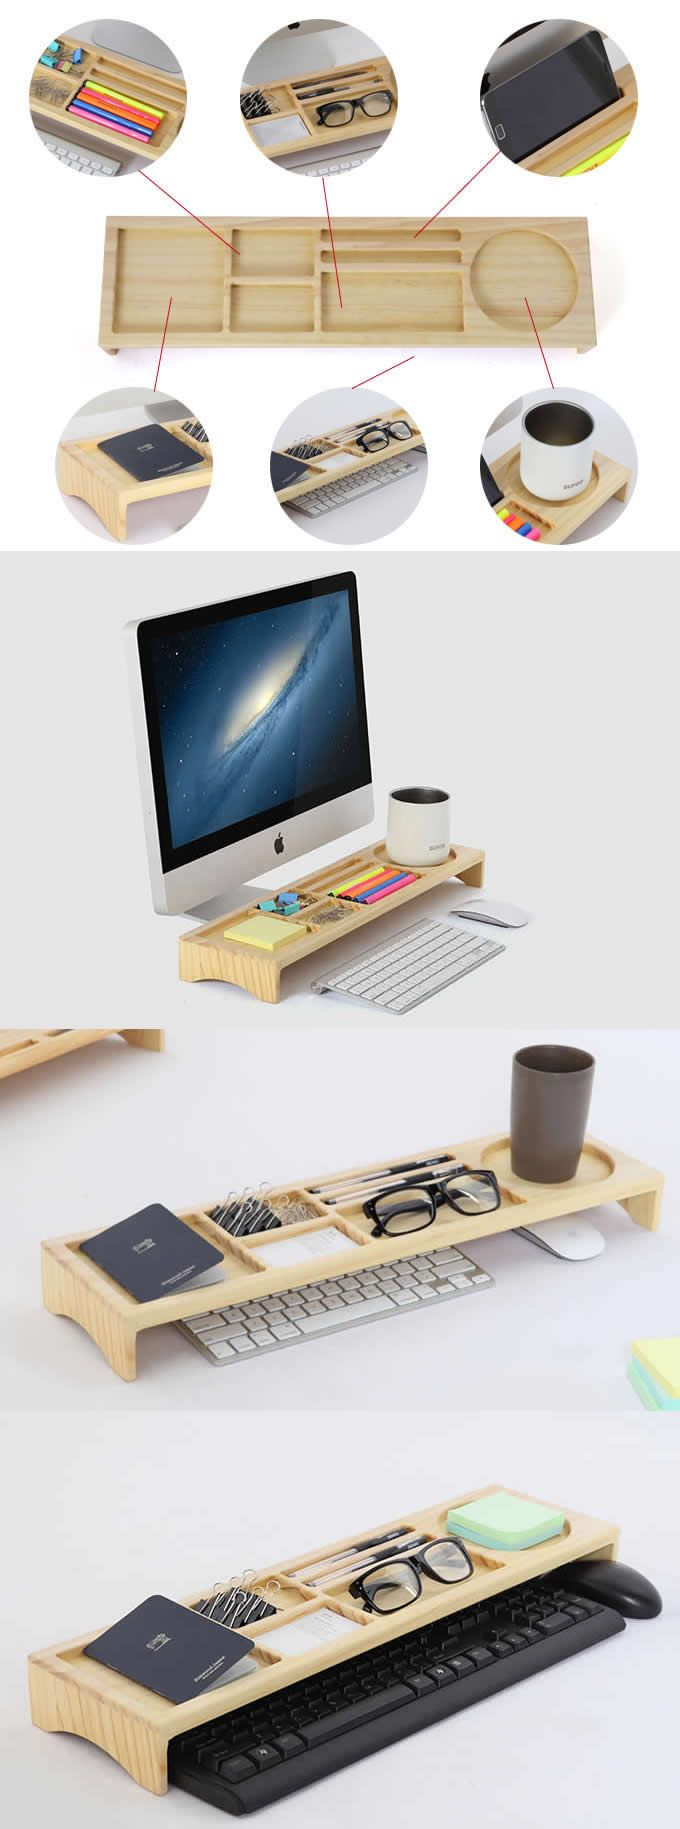 Wooden Stationery Office Desk Organizer Phone Stand Holder Pen Holder Over The Keyboard Office